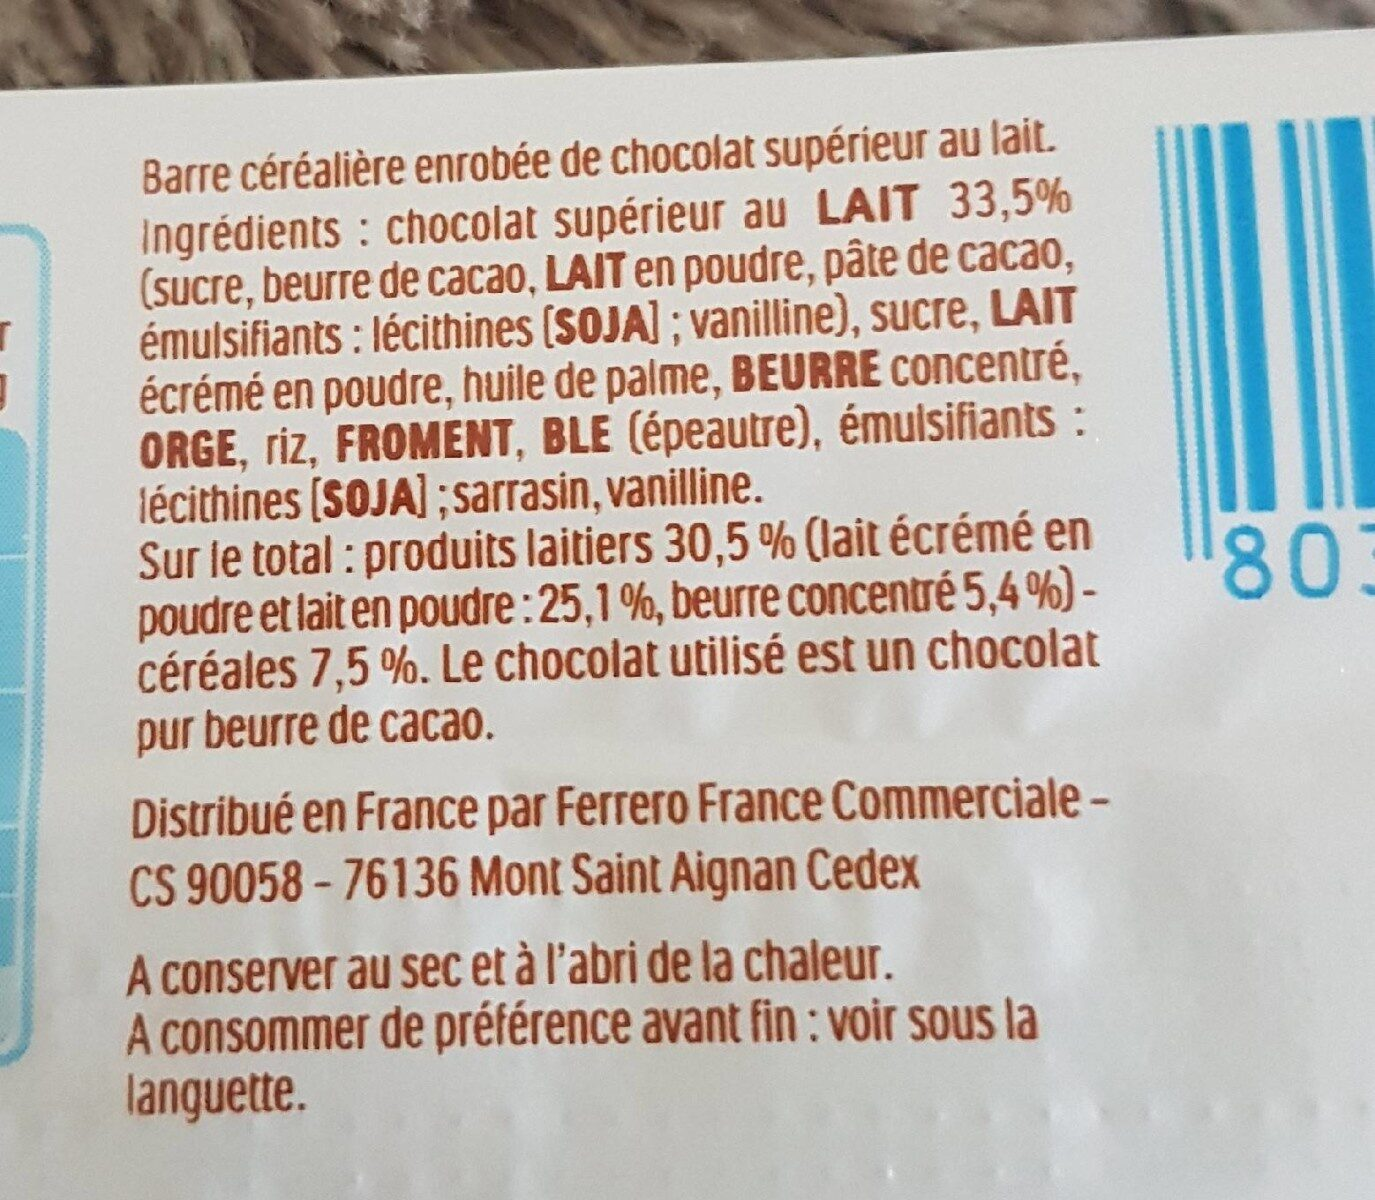 Kinder country barre de cereales enrobee de chocolat 1 barre - Ingredients - fr